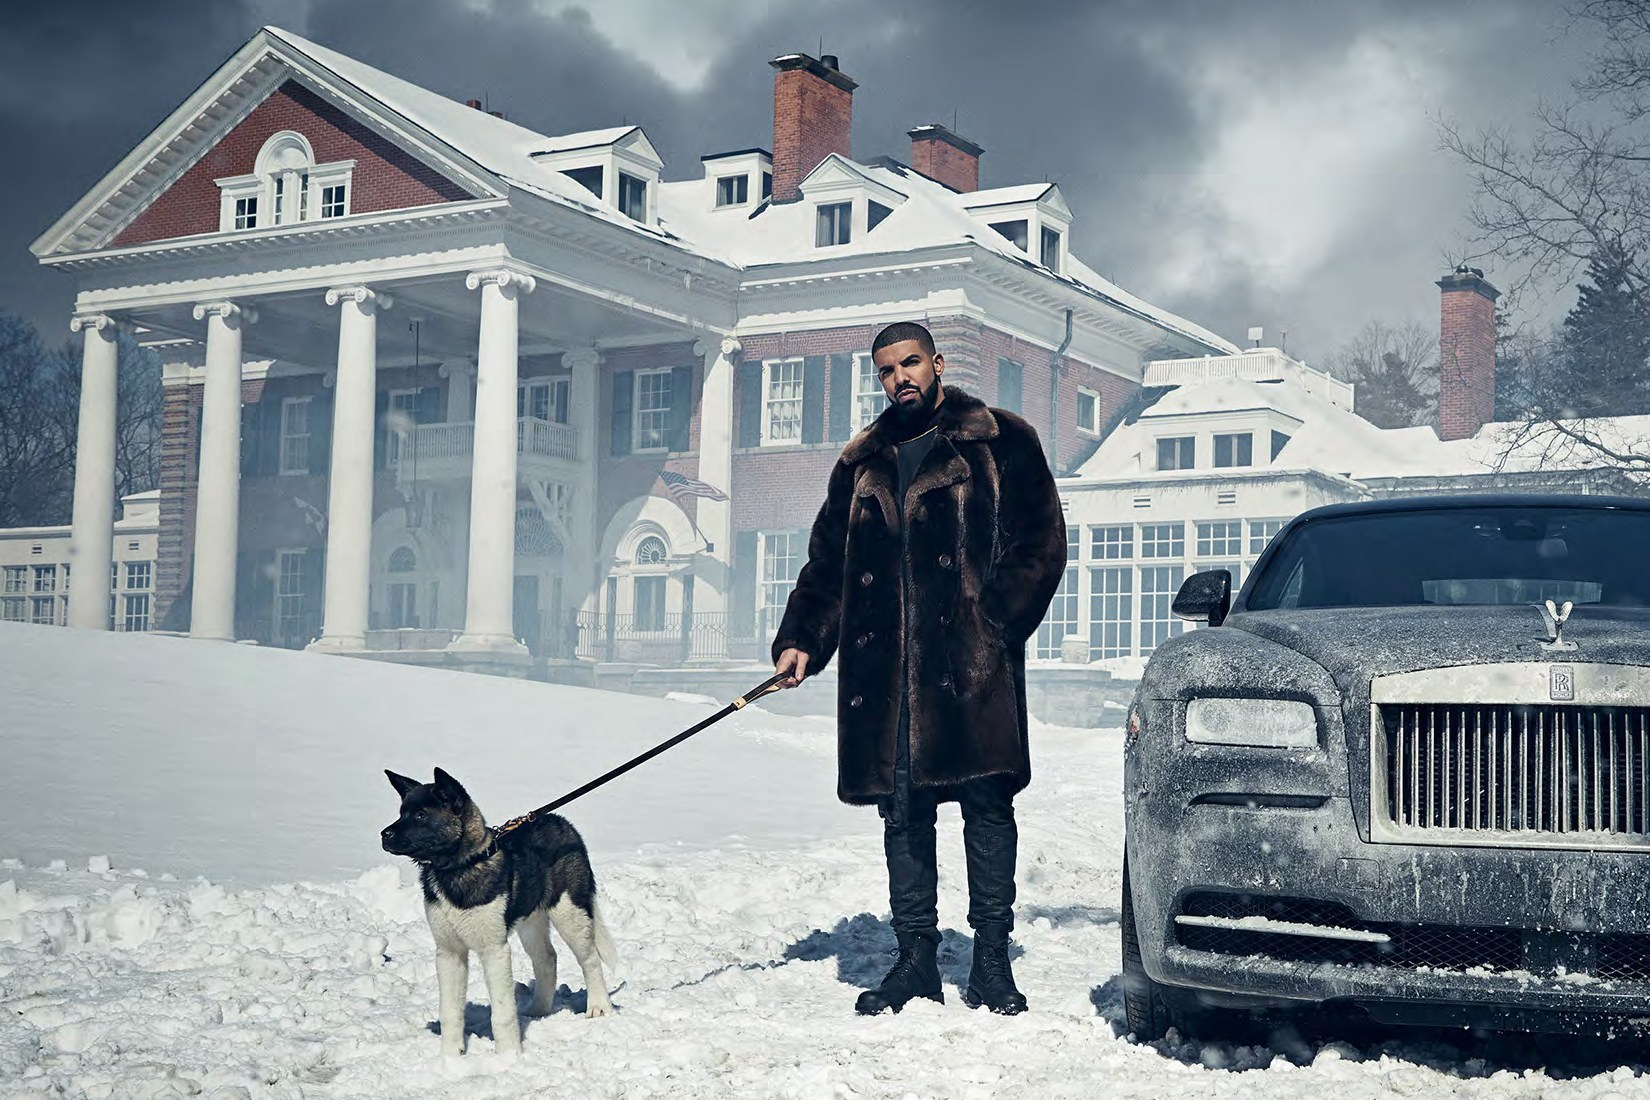 Drake's 'VIEWS' Was Streamed Over a Quarter of a Billion Times & Sold 1.2 Million Copies